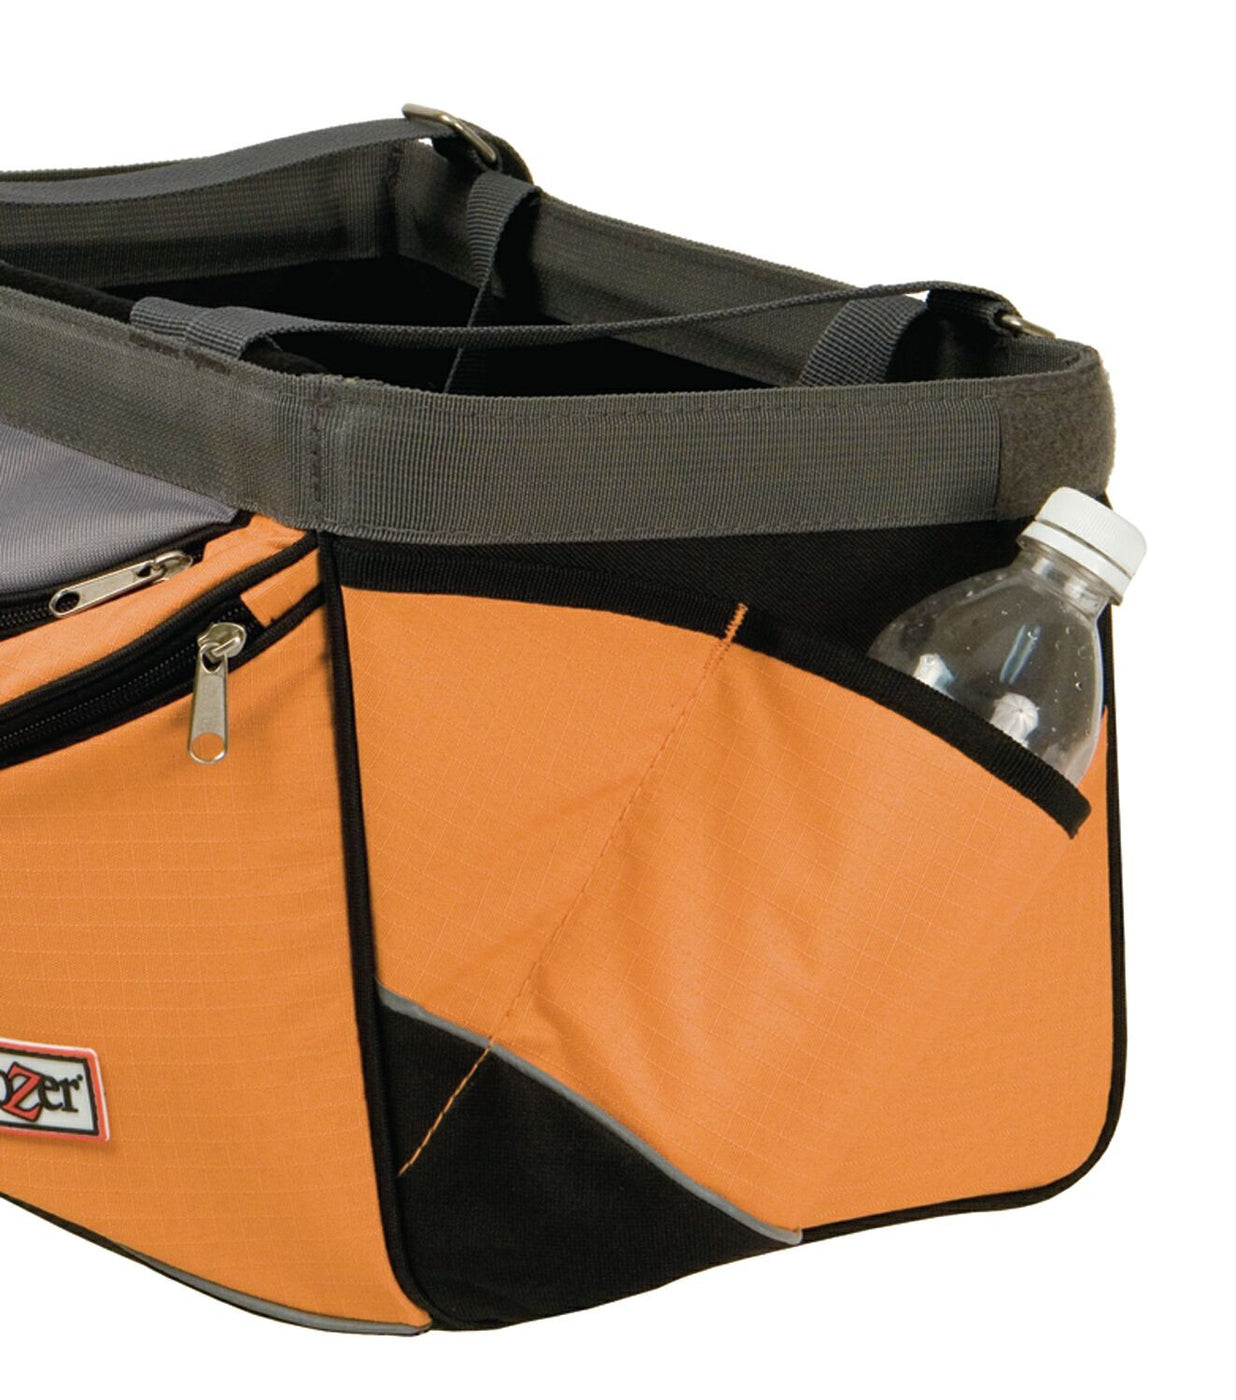 Snoozer Sporty Dog Bike Basket Orange Side Pocket for Waterbottle